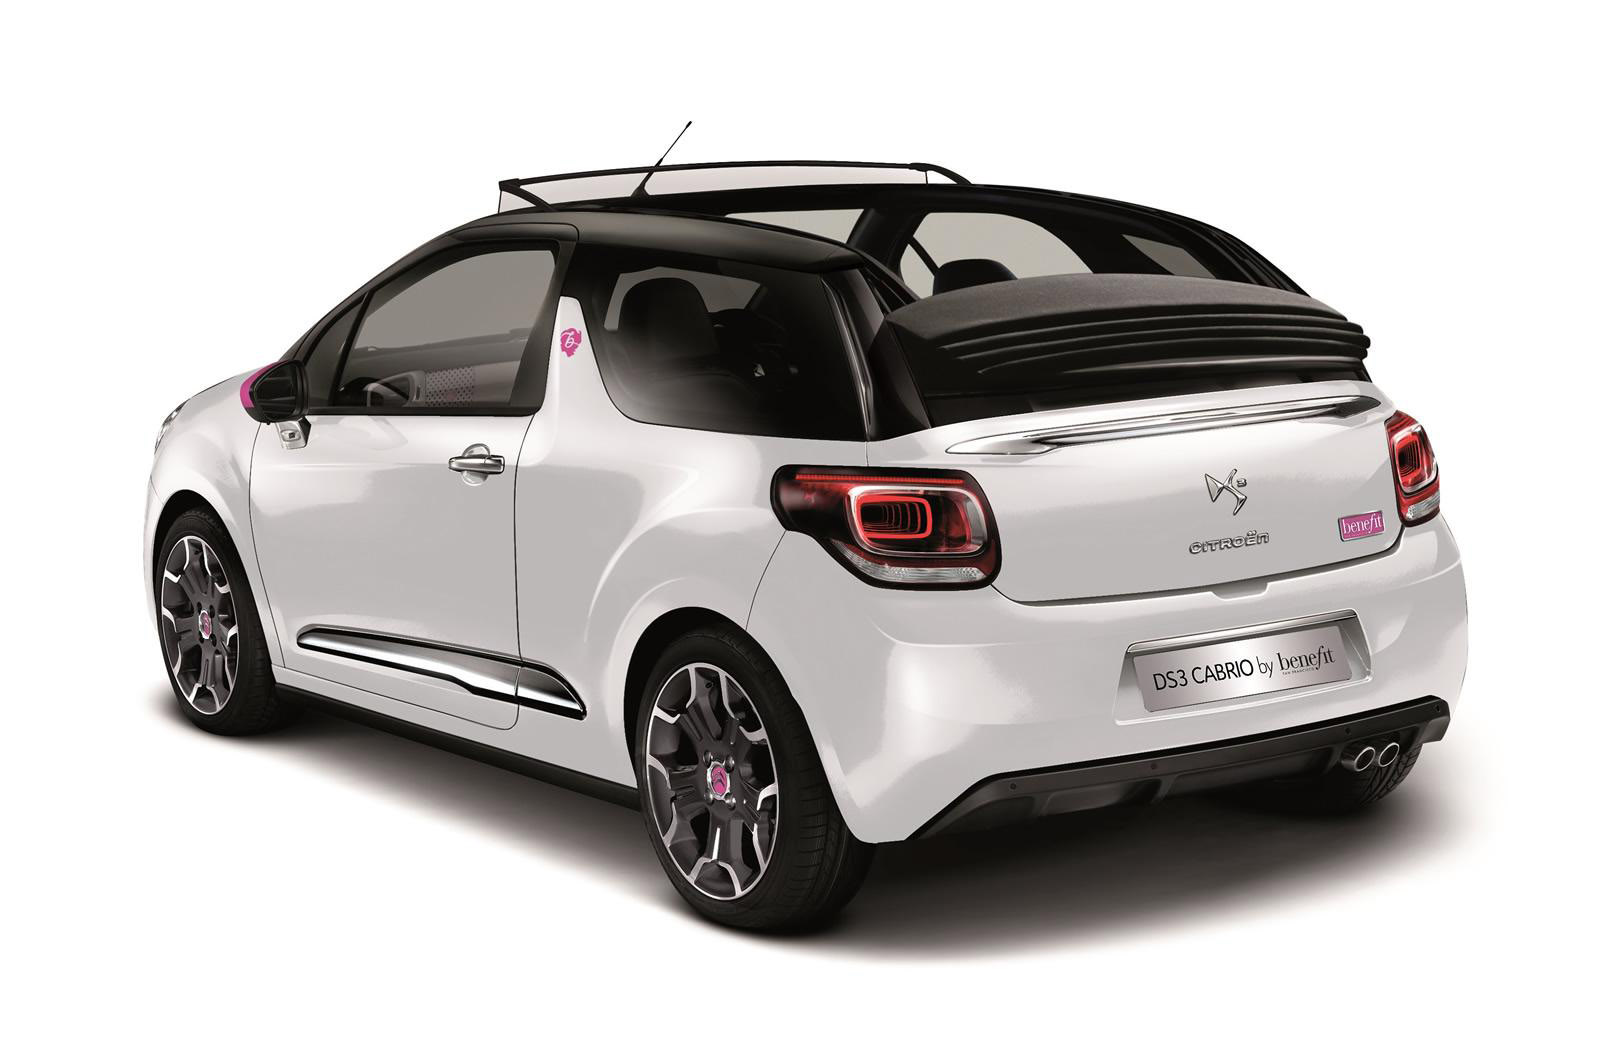 citroen ds3 cabrio dstyle by benefit special edition. Black Bedroom Furniture Sets. Home Design Ideas